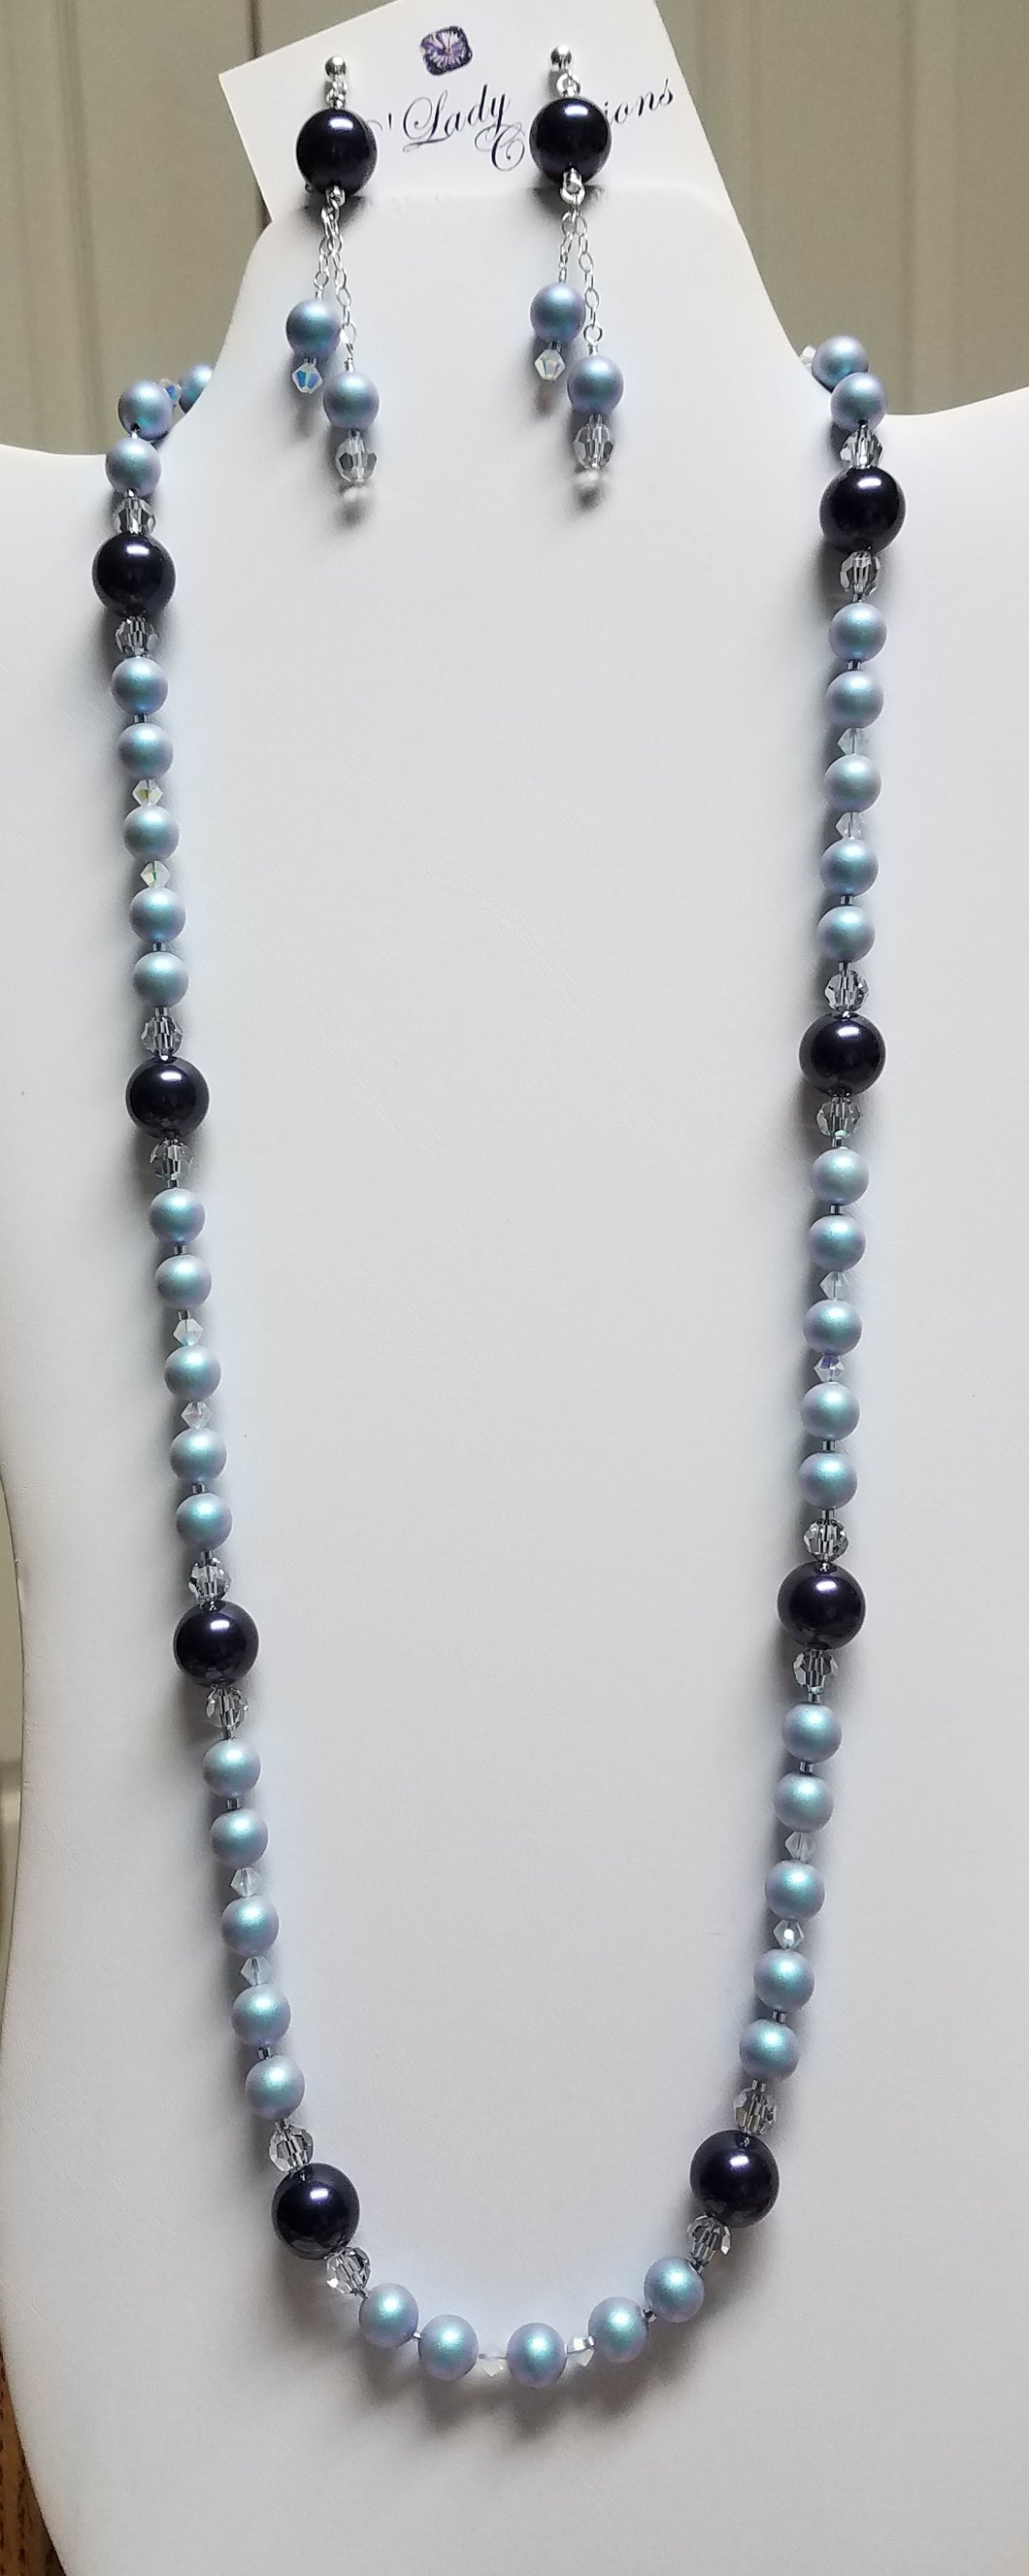 Iridescent-Light-Blue-Night-Blue-Swarovski-Pearl-Crystal-Necklace-Earrings